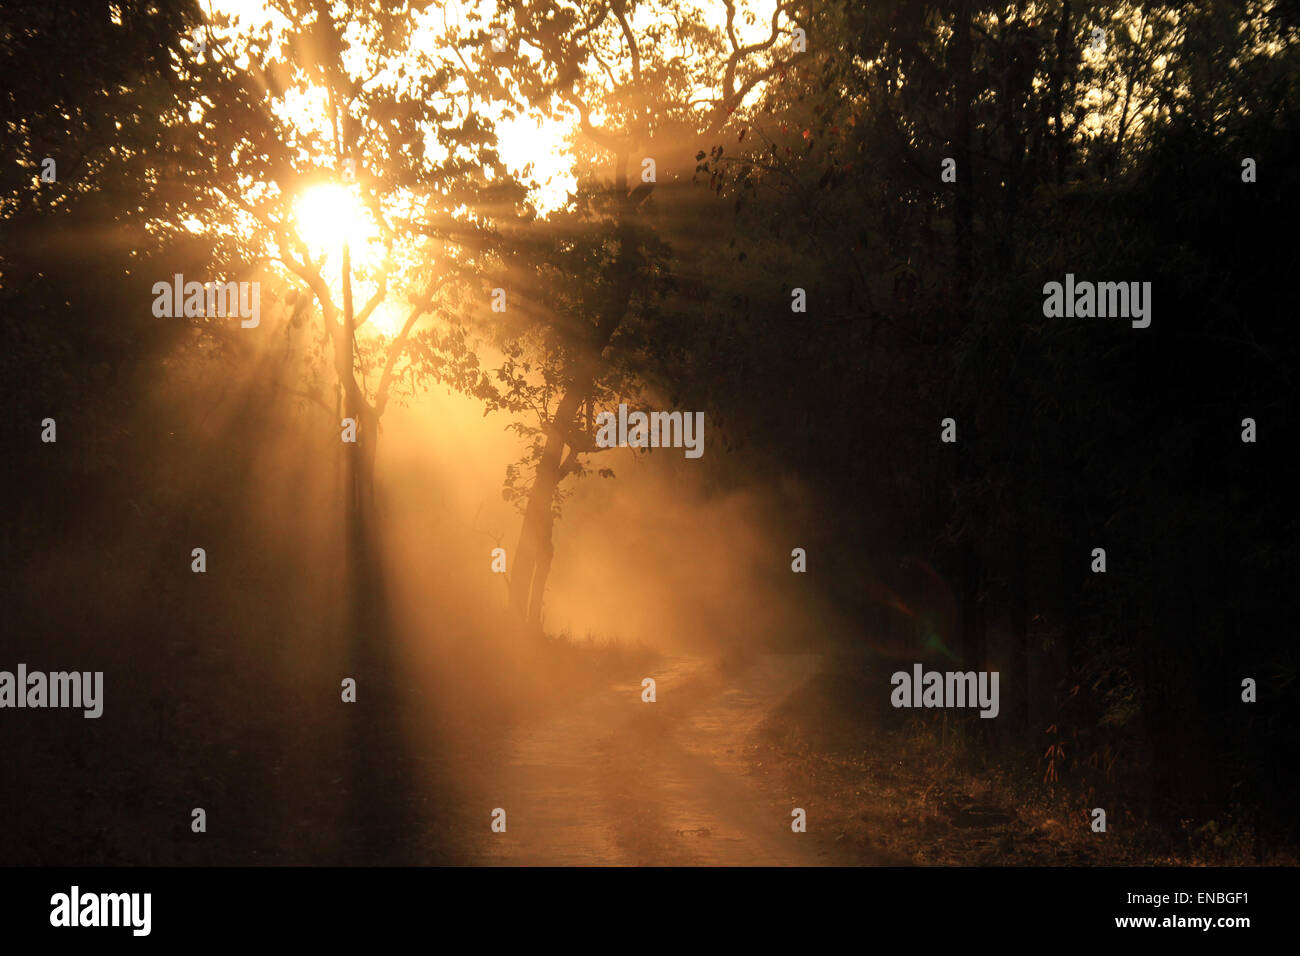 Sunbeams Breaking through the Forest at Early Morning Game Drive in Kanha National Park, Madhya Pradesh, India - Stock Image